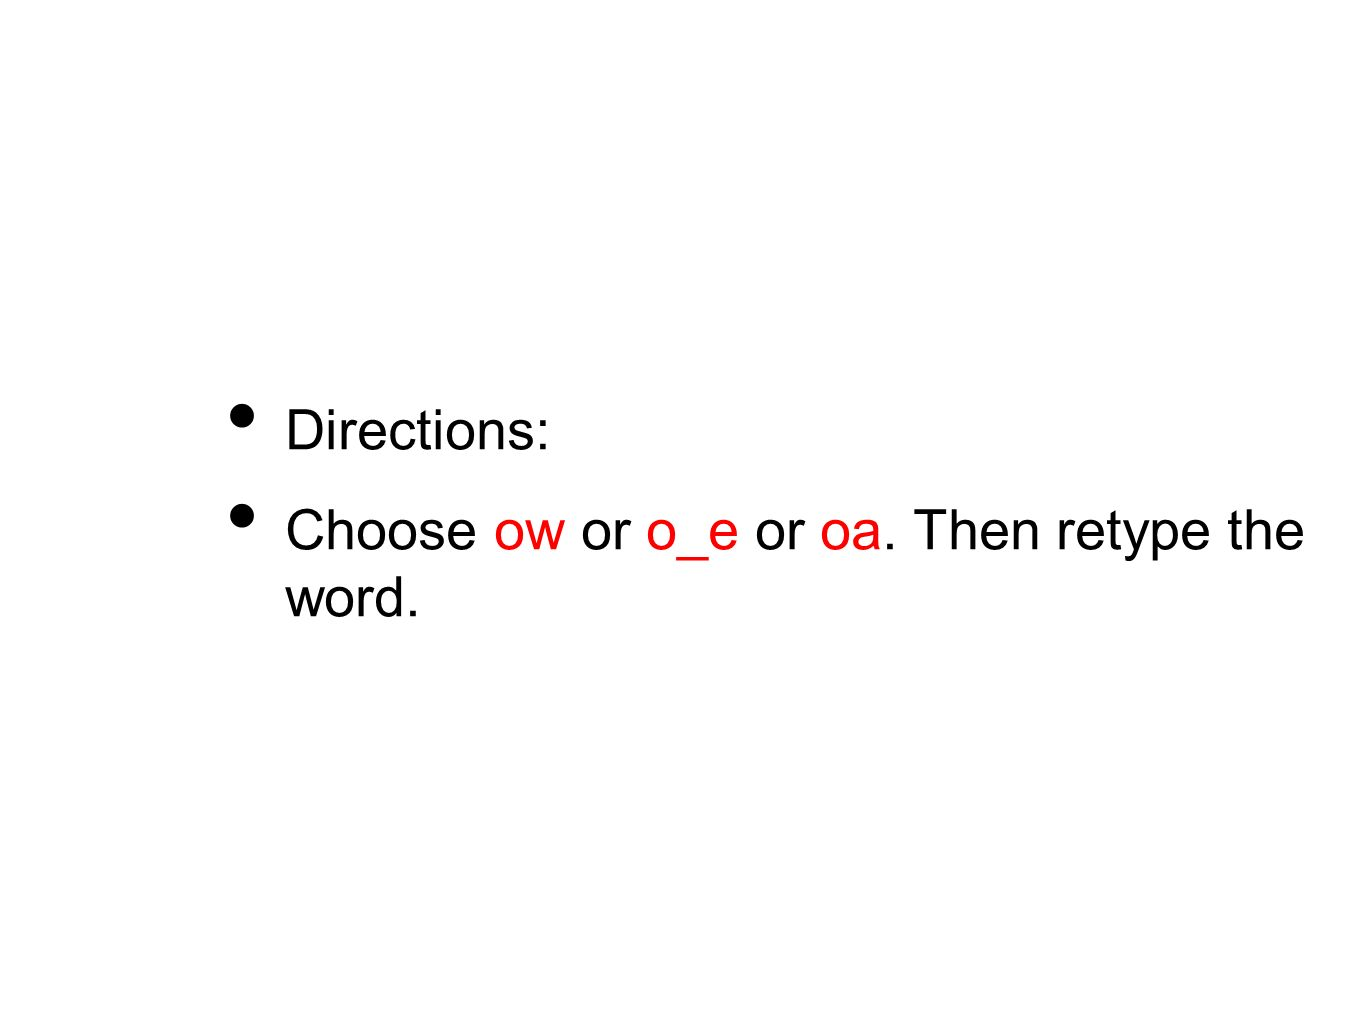 Directions: Choose ow or o_e or oa. Then retype the word.